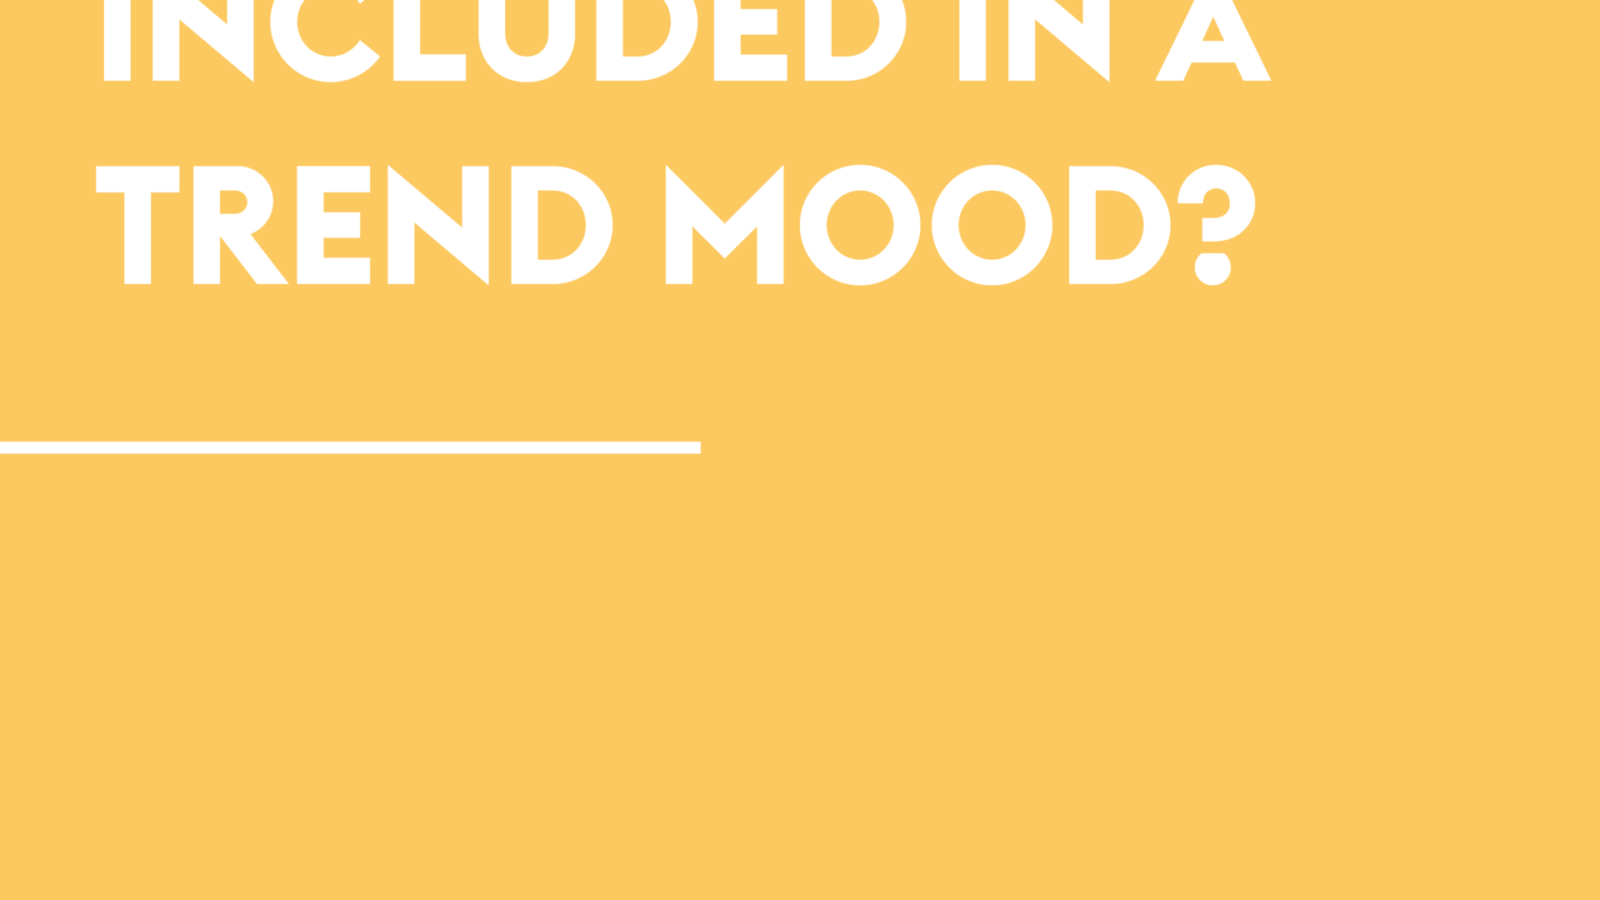 TrendMoods_What's included_1